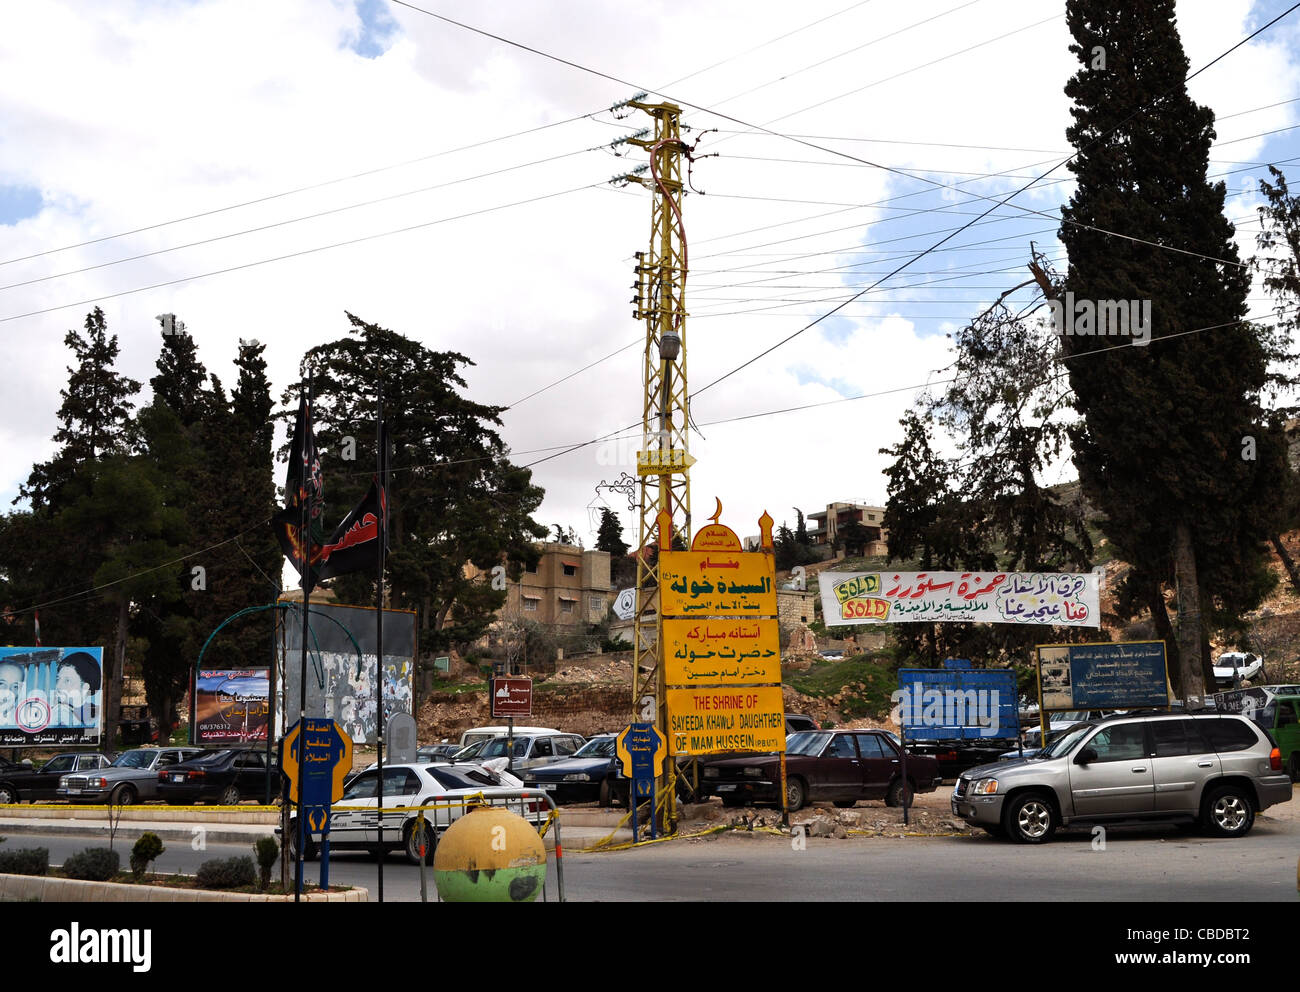 Shi'a mosque, shrine loved by women, daughter of Imam Hussain, Sayeeda Khawla, area controlled by Hezbollah - Stock Image